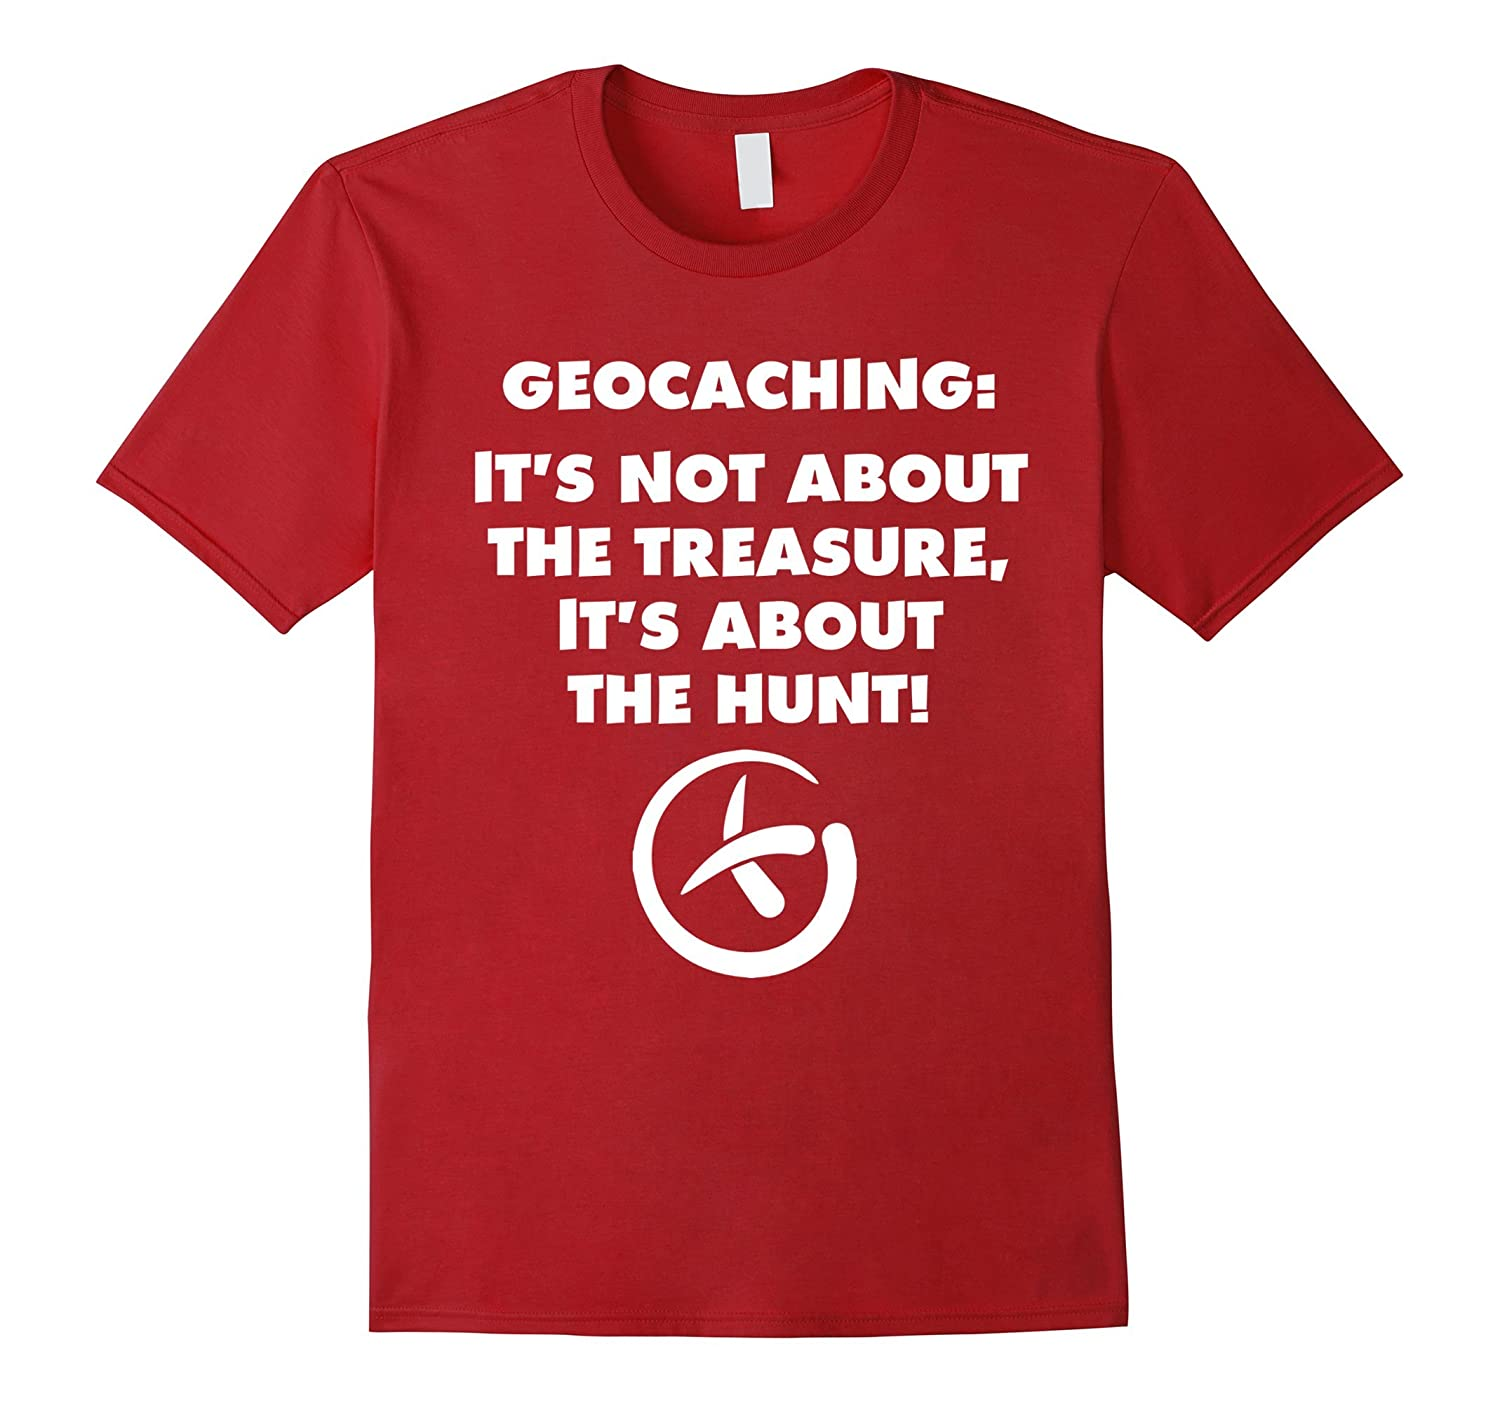 Geocaching Not About Treasure About the Hunt T-Shirt-Vaci